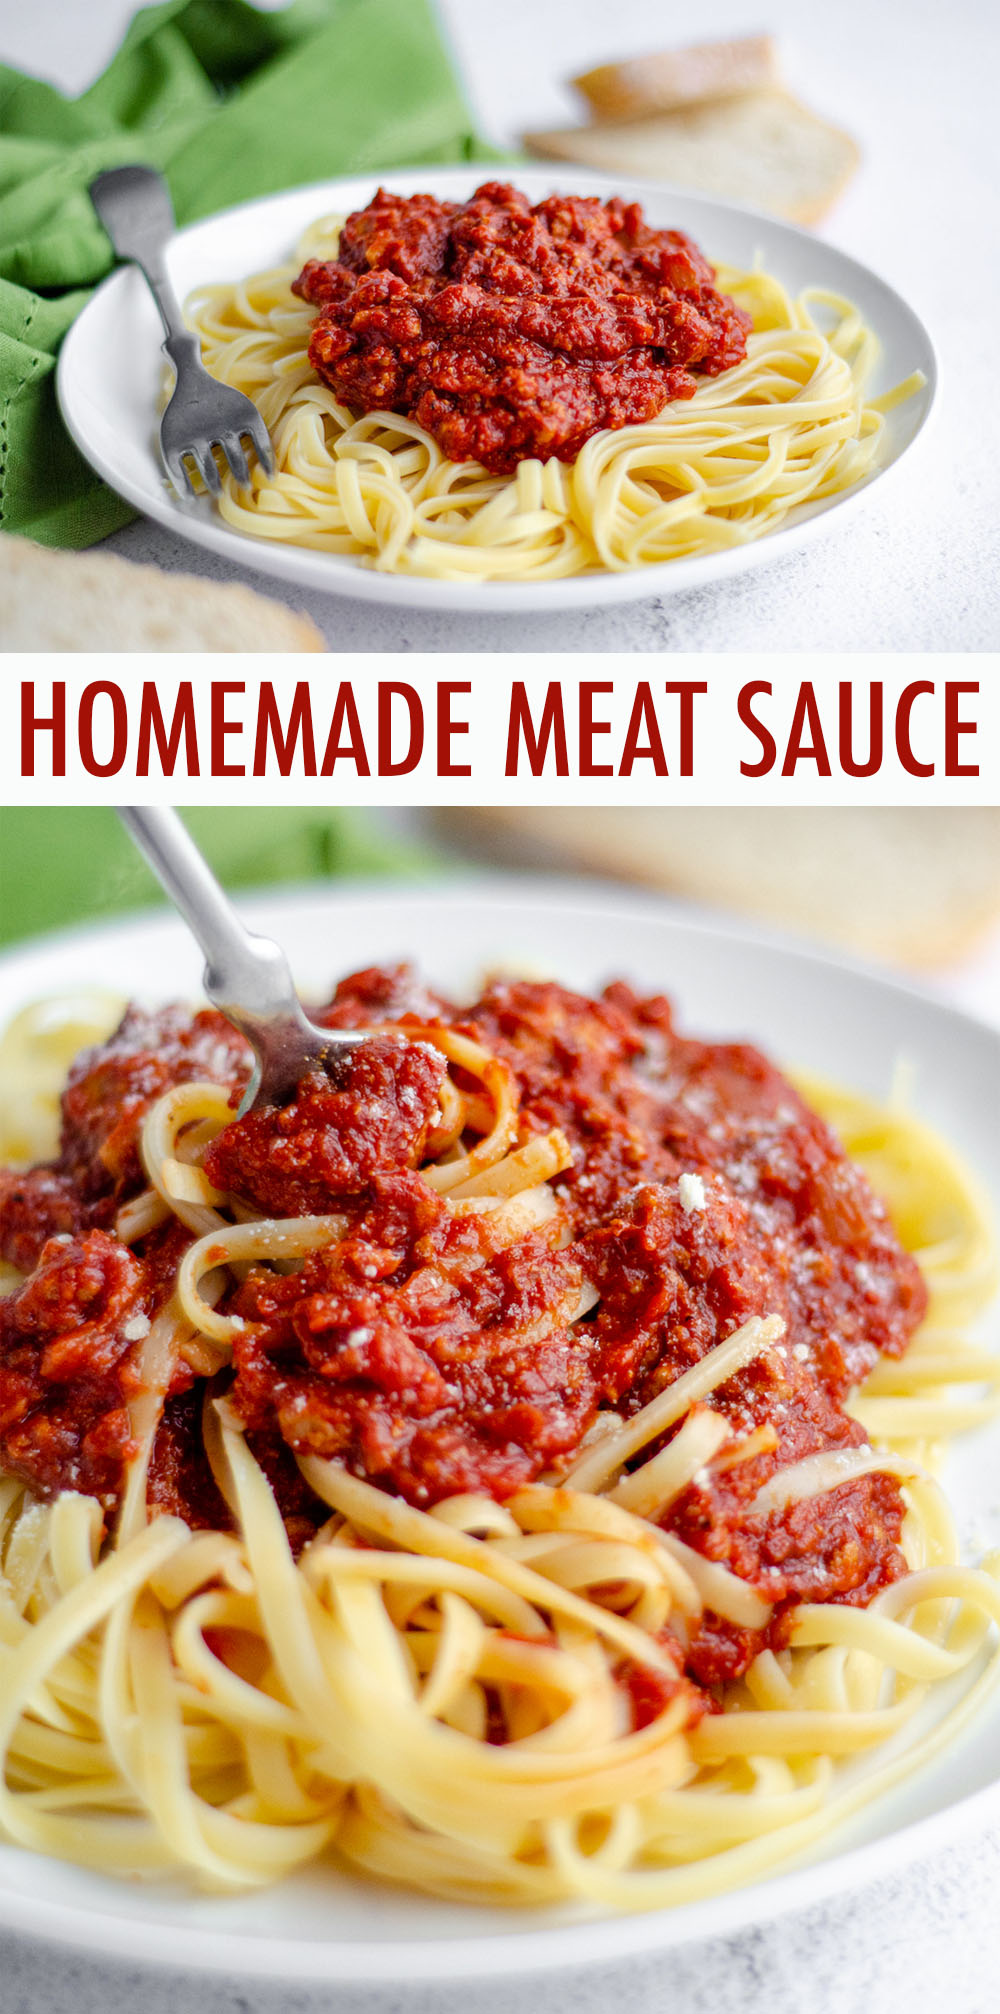 An easy homemade pasta sauce made with five simple ingredients. This recipe has been in my family for over a century and is a go-to for pasta dishes and lasagna or over vegetables or eggs.